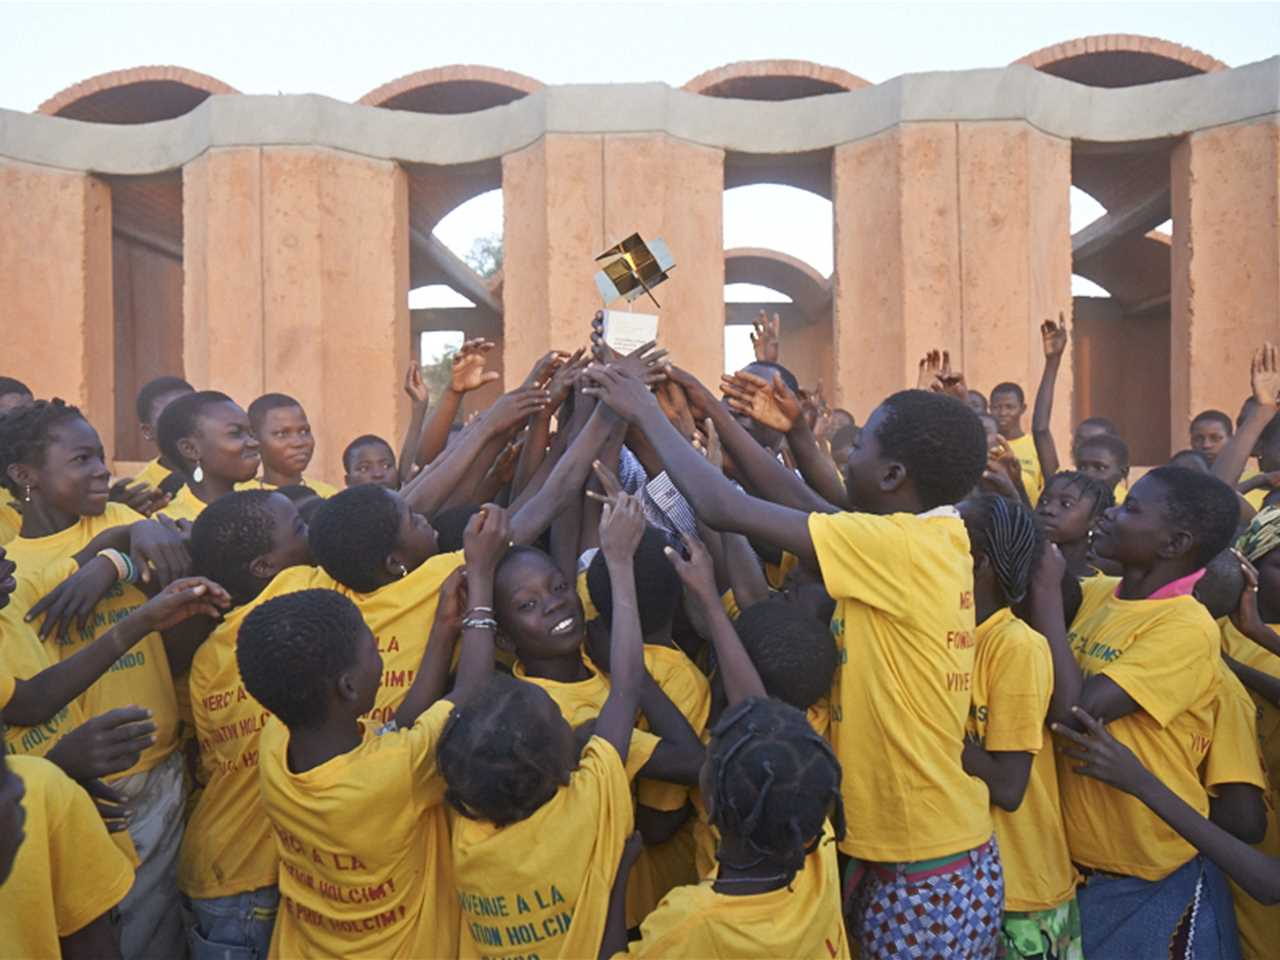 """Vive le prix Holcim"": enthusiastic students raise the Global Holcim Awards Gold trophy in …"